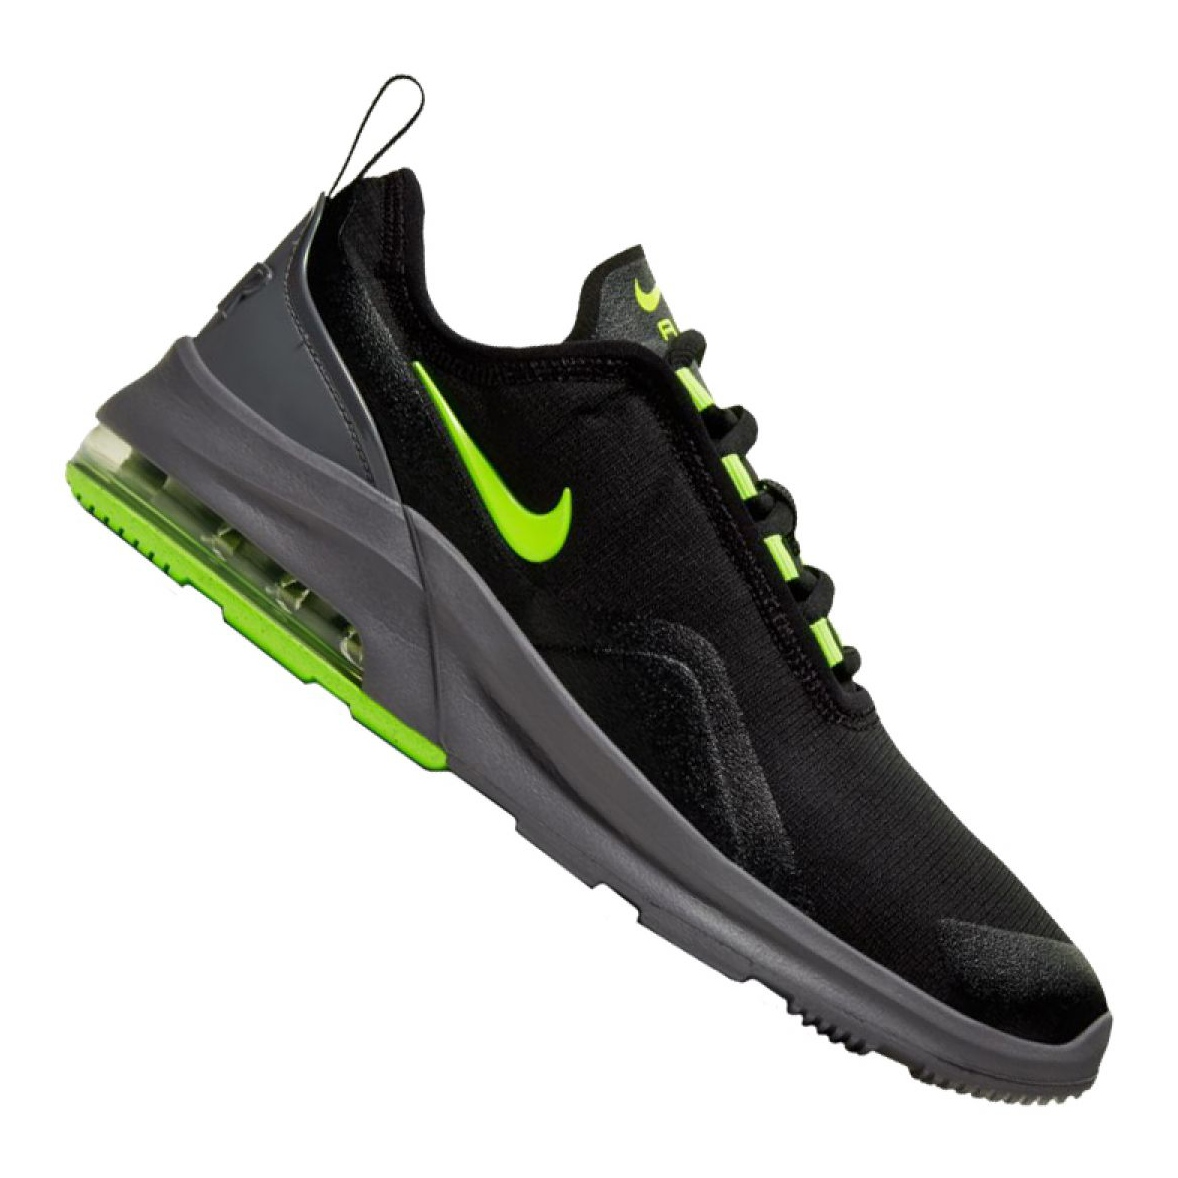 Sapatilhas Nike Air Max Motion 2 Gs Jr AQ2741 011 preto